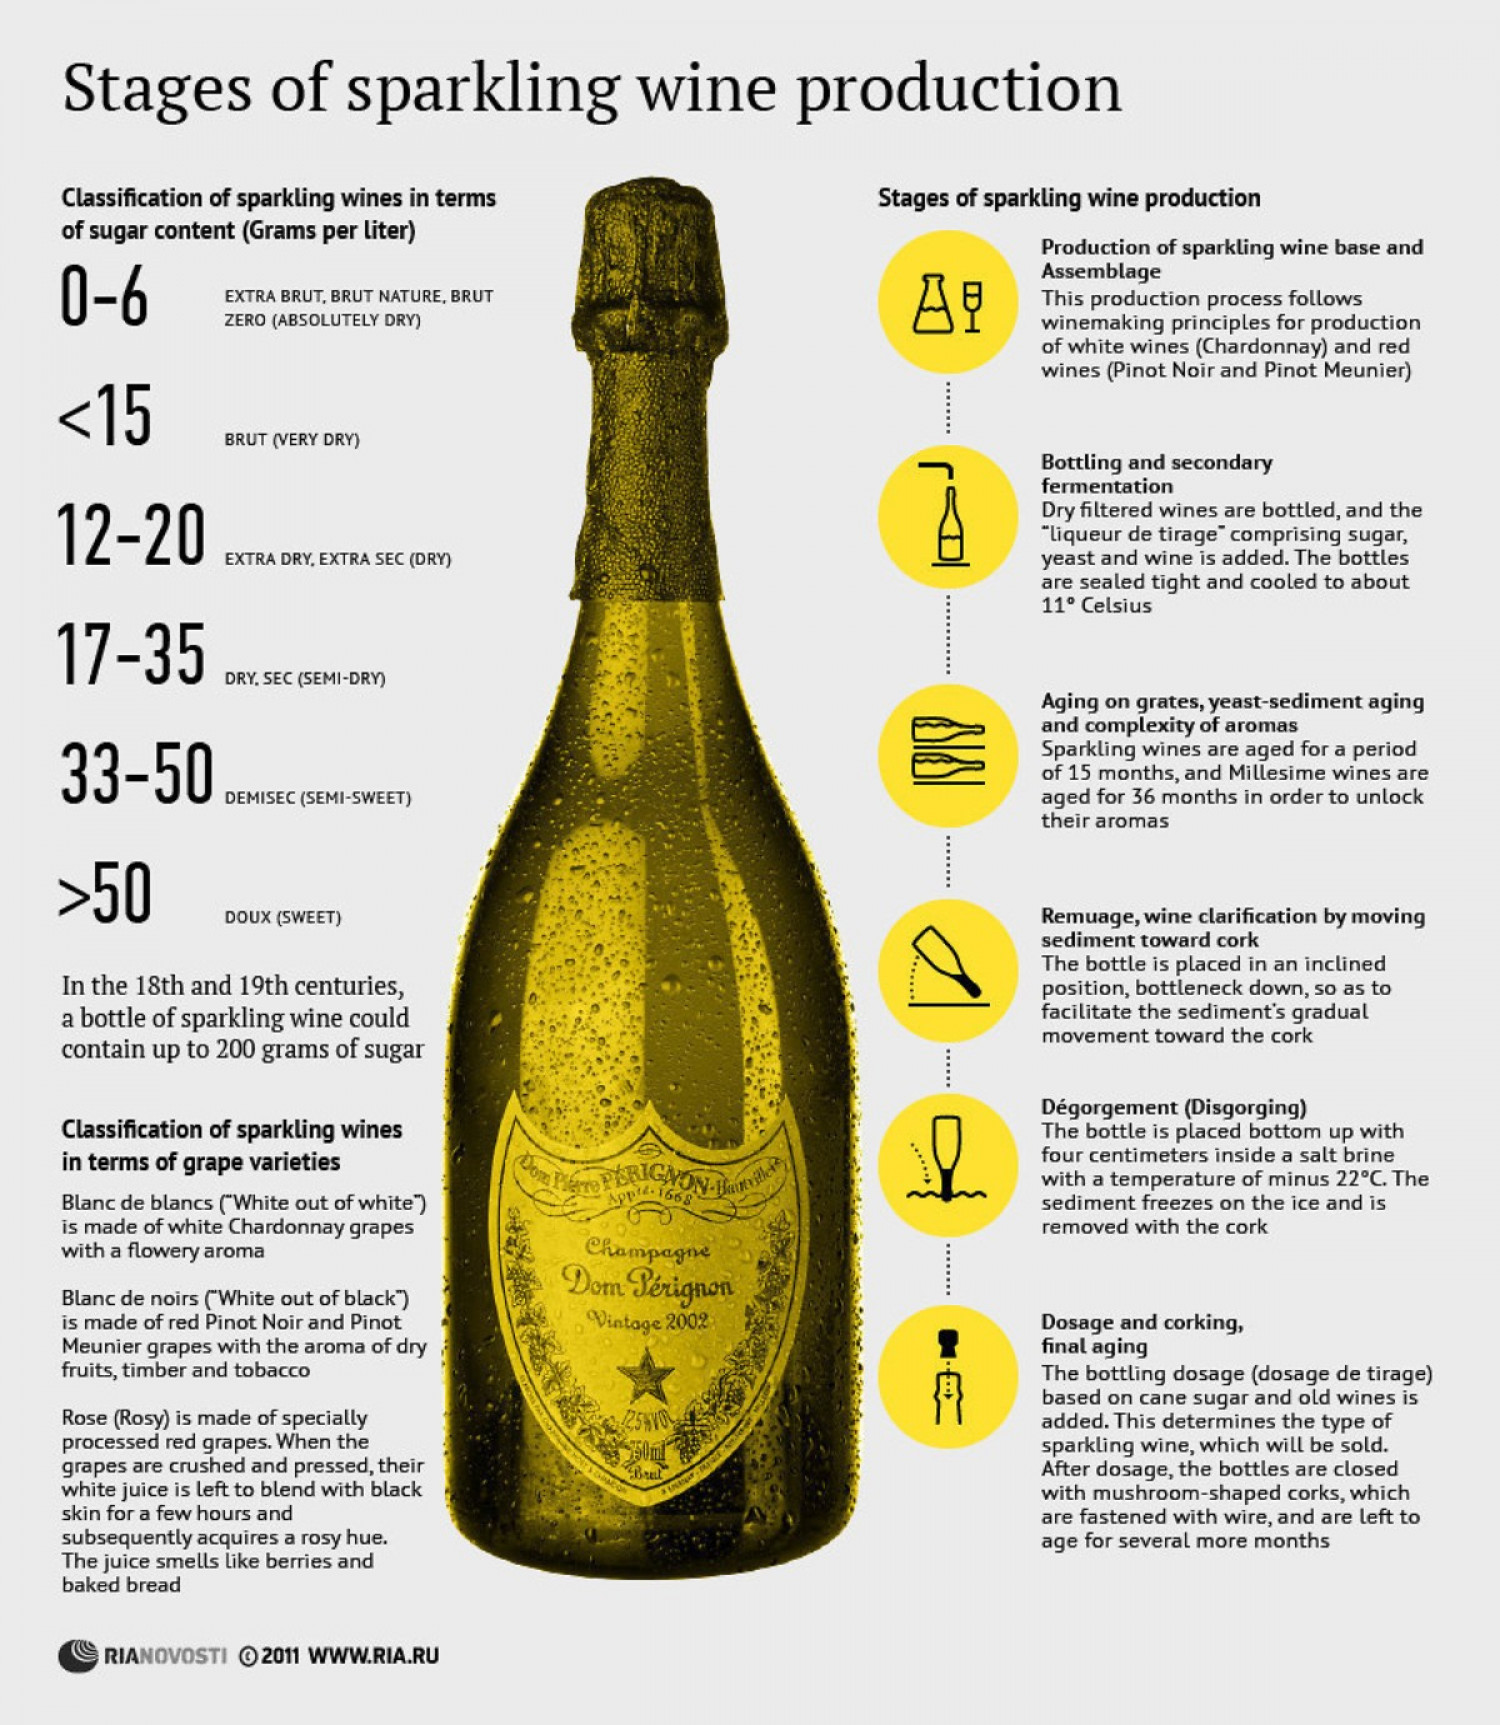 Stages of Sparkling Wine Production Infographic